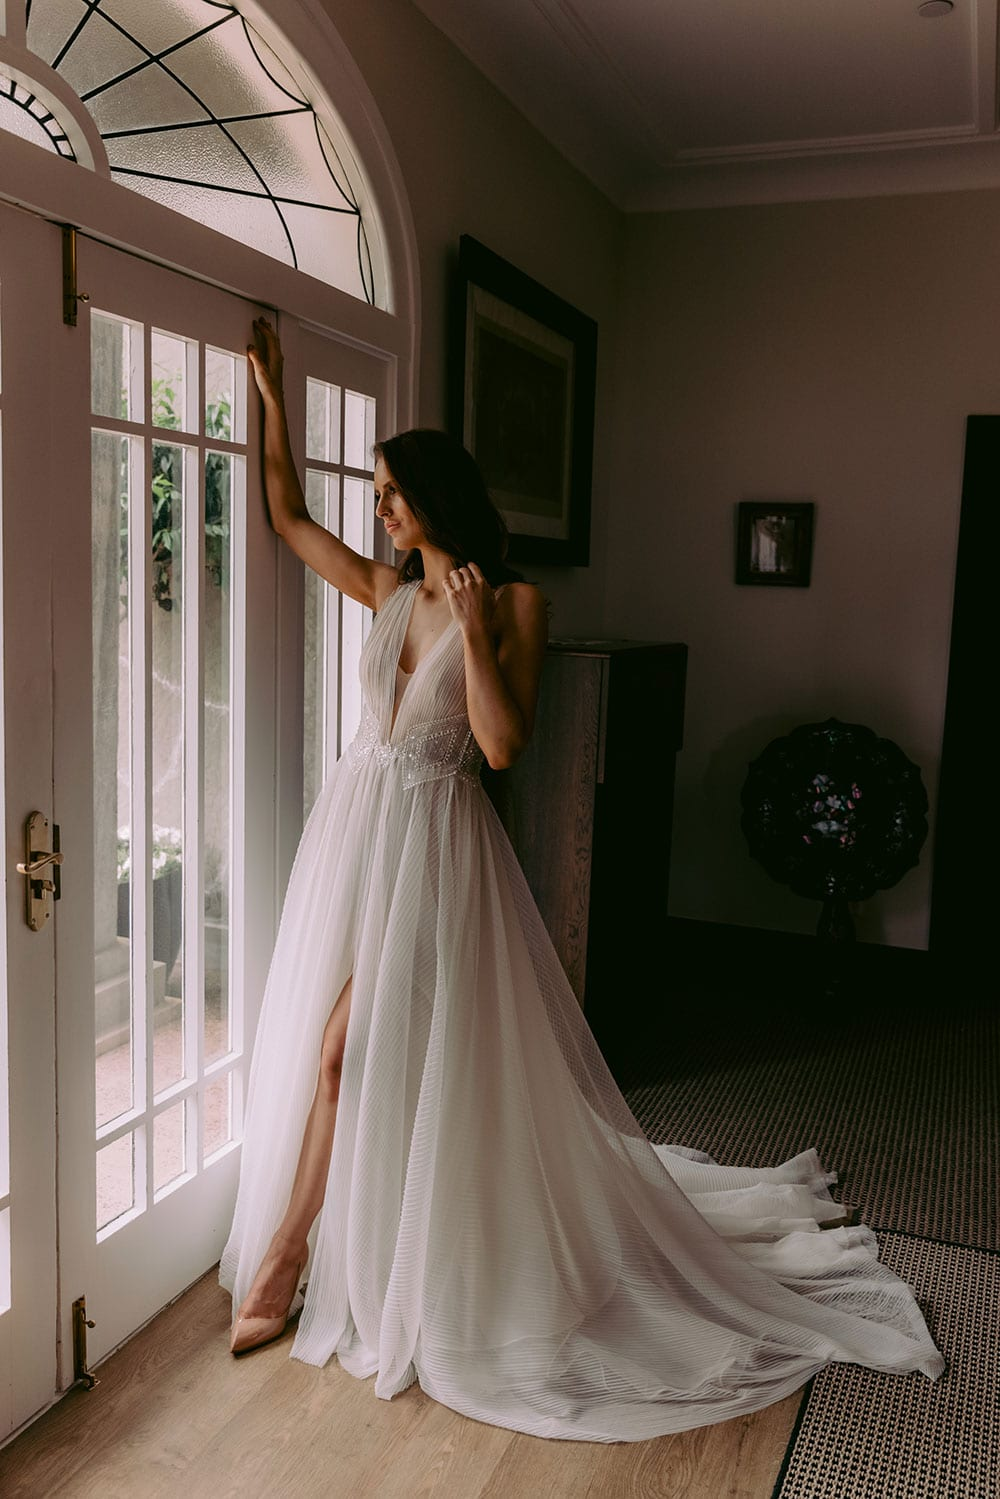 Daytona Wedding gown from Vinka Design - This gown is a true show stopper! Soft pleated tulle wedding dress that cascades into a dramatic train. Tulle or Satin under-skirt accentuates the waist with the perfect combination of hand-beaded sequins and pearls. Model wearing gown inside beautiful old room next to window, train flowing behind.